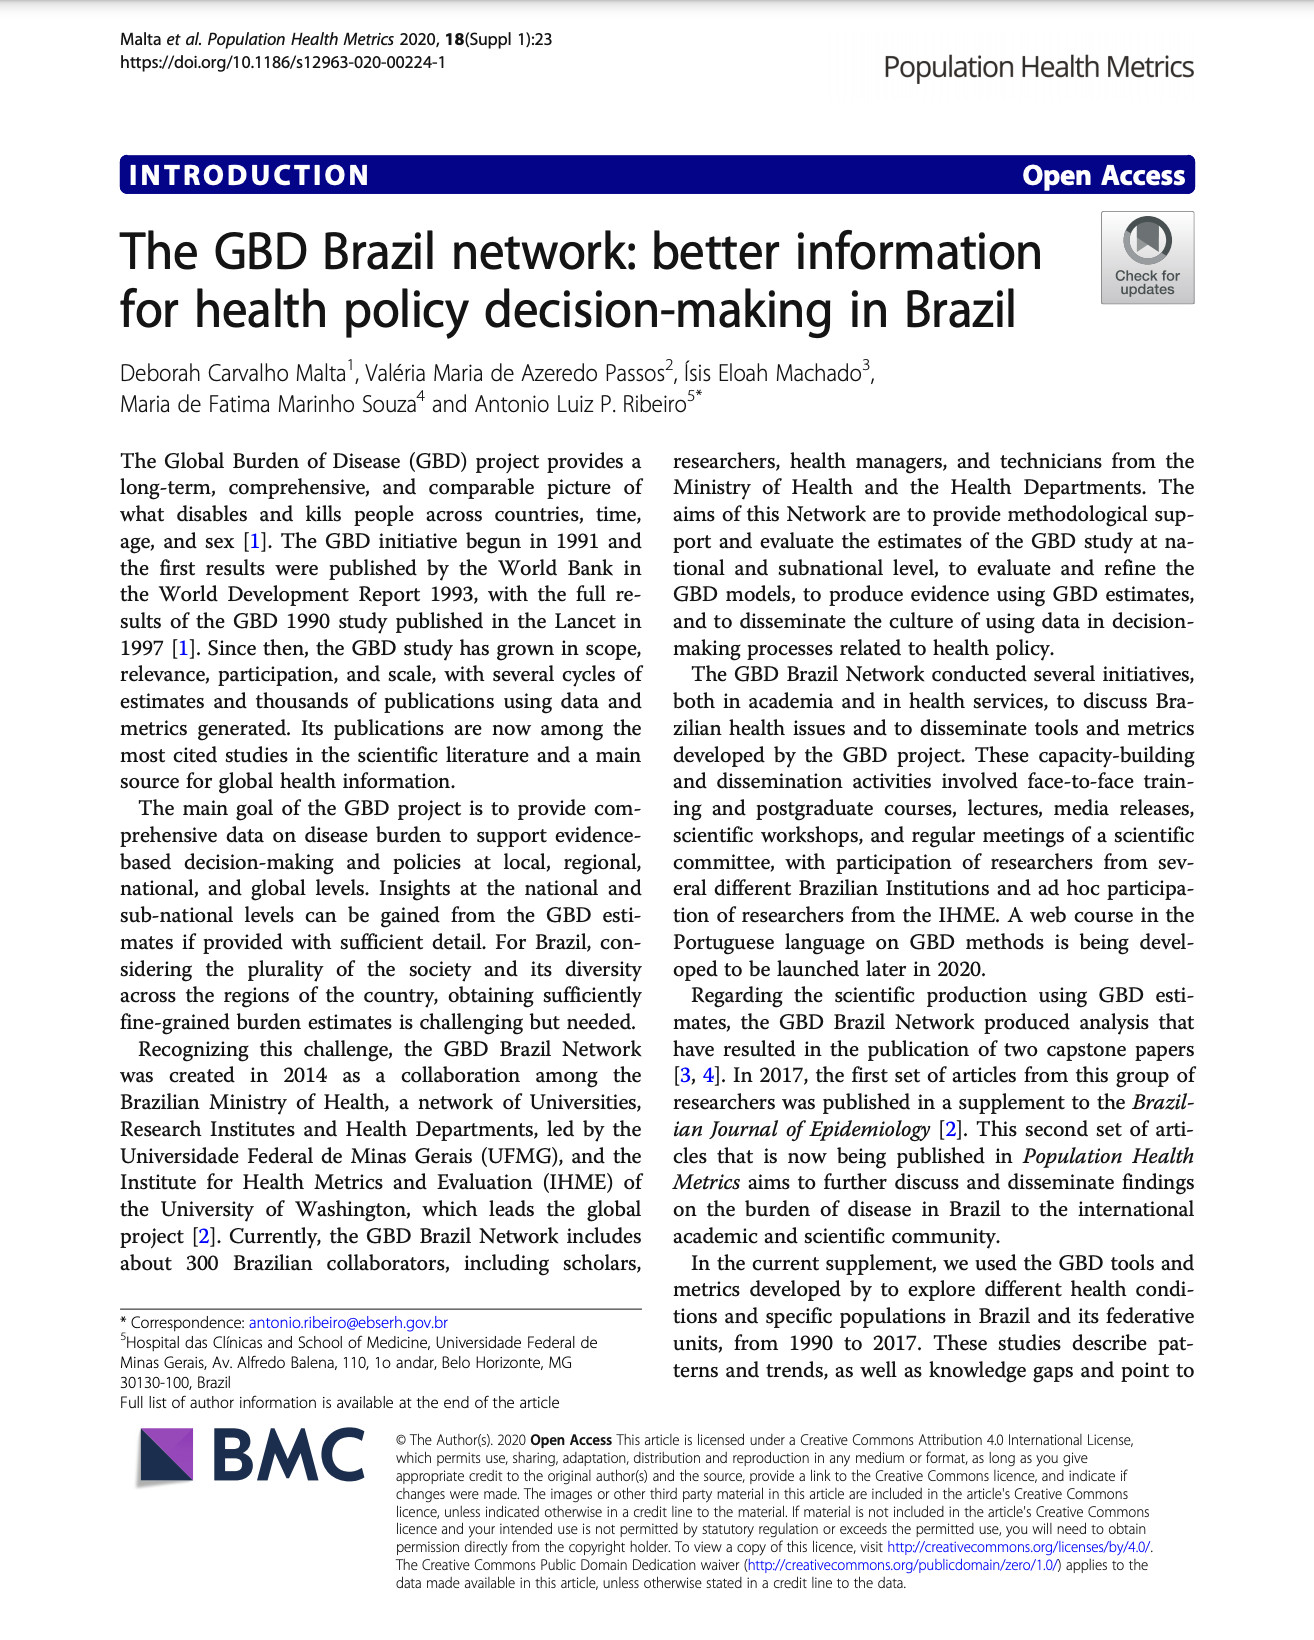 The GBD Brazil network: better information for health policy decision-making in Brazil thumbnail